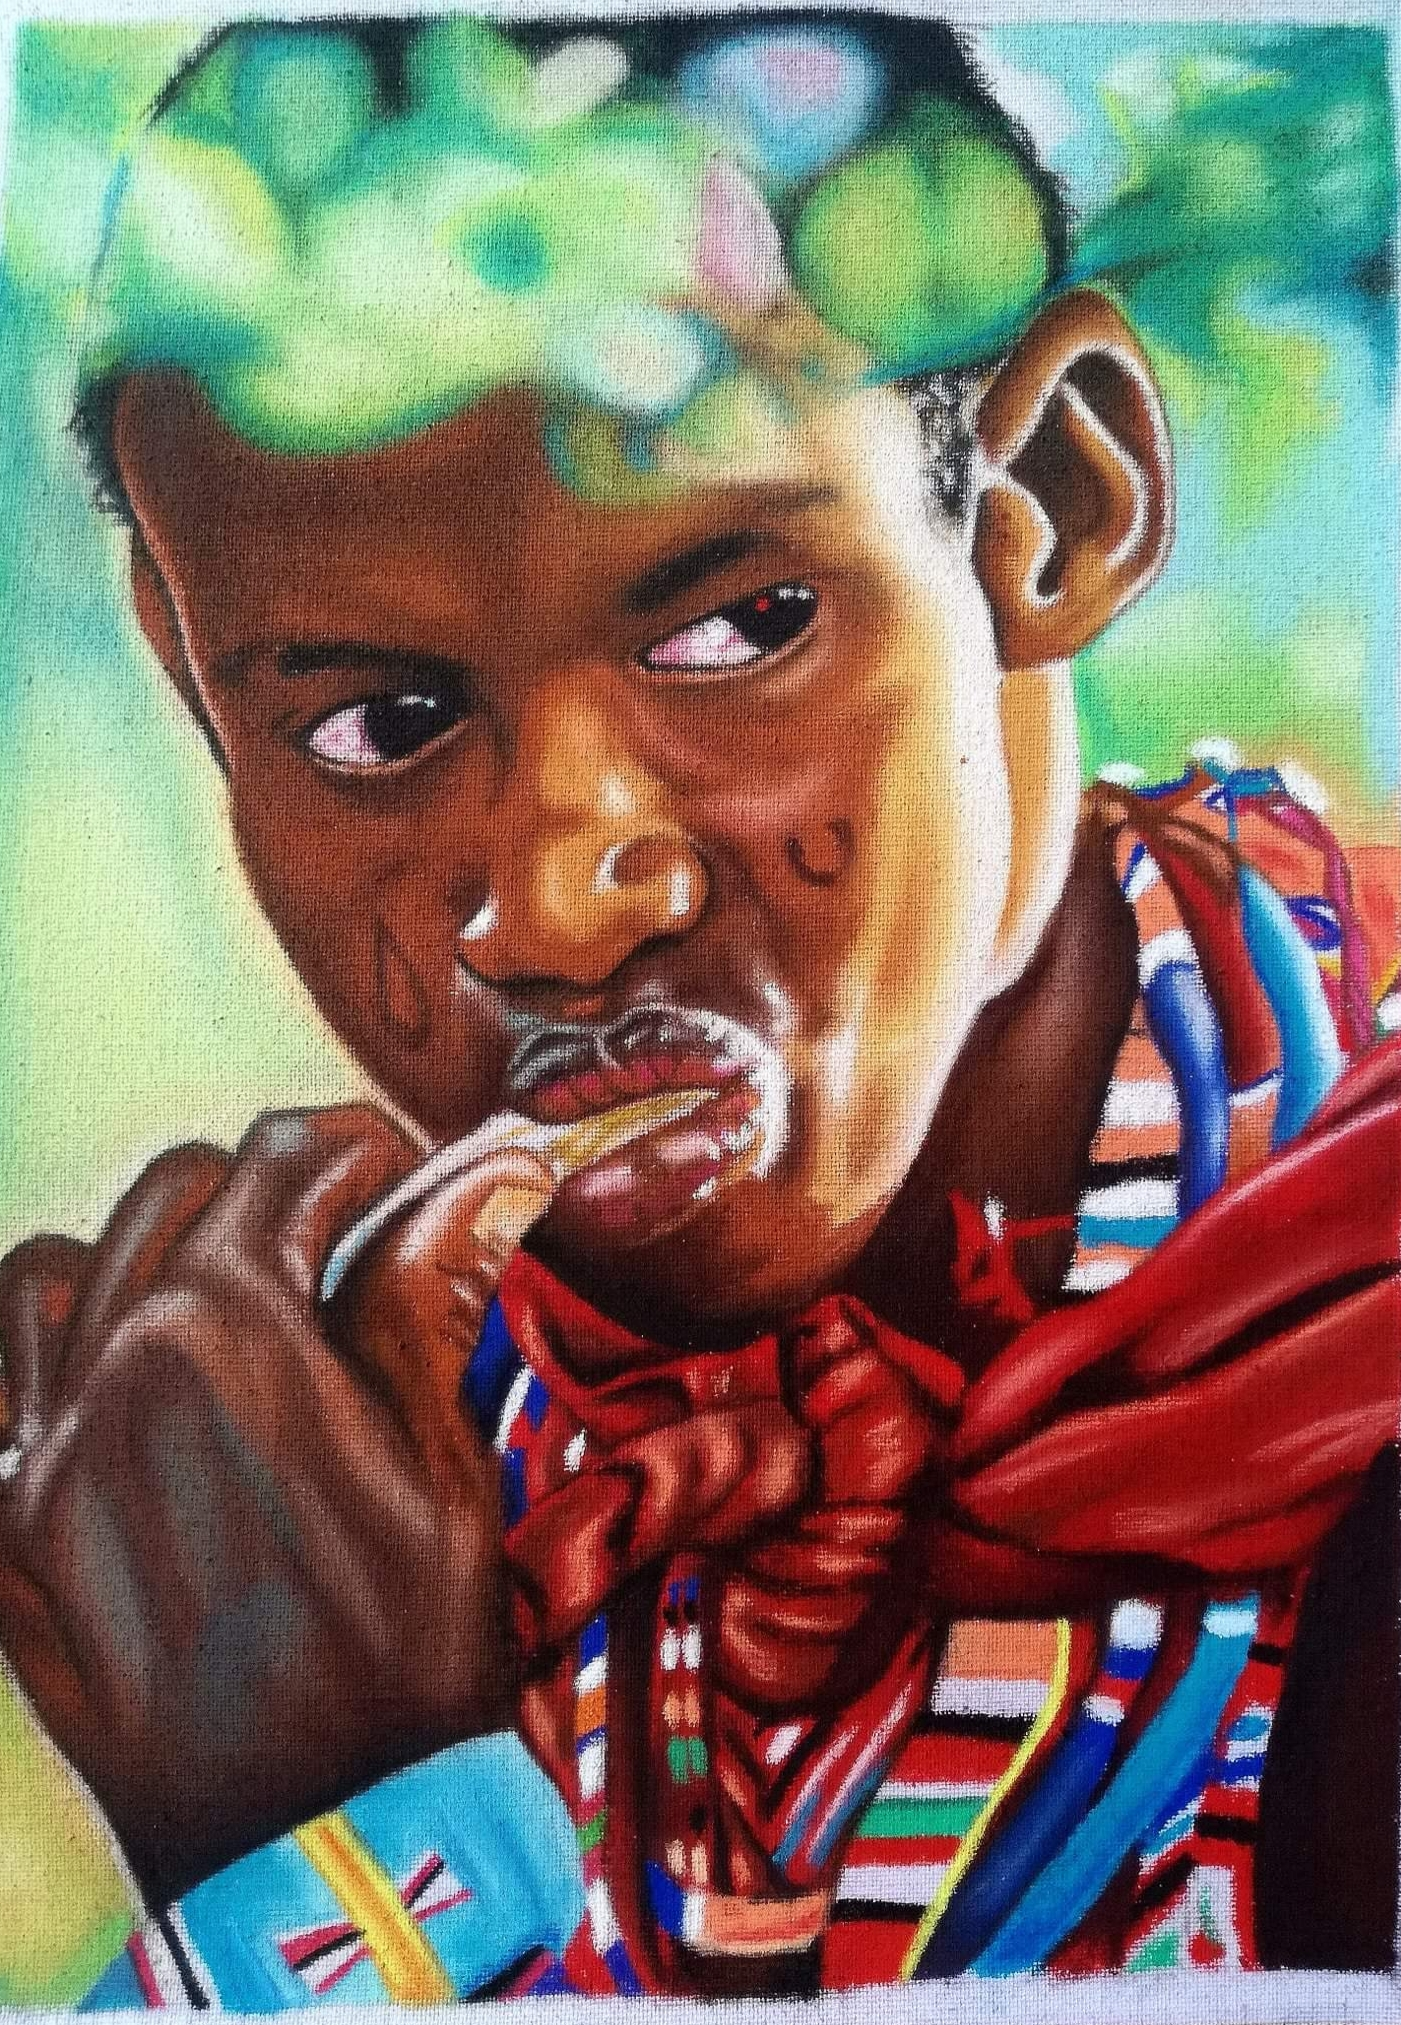 Schadrack Ntamagendero Chad - Painting 6.jpg